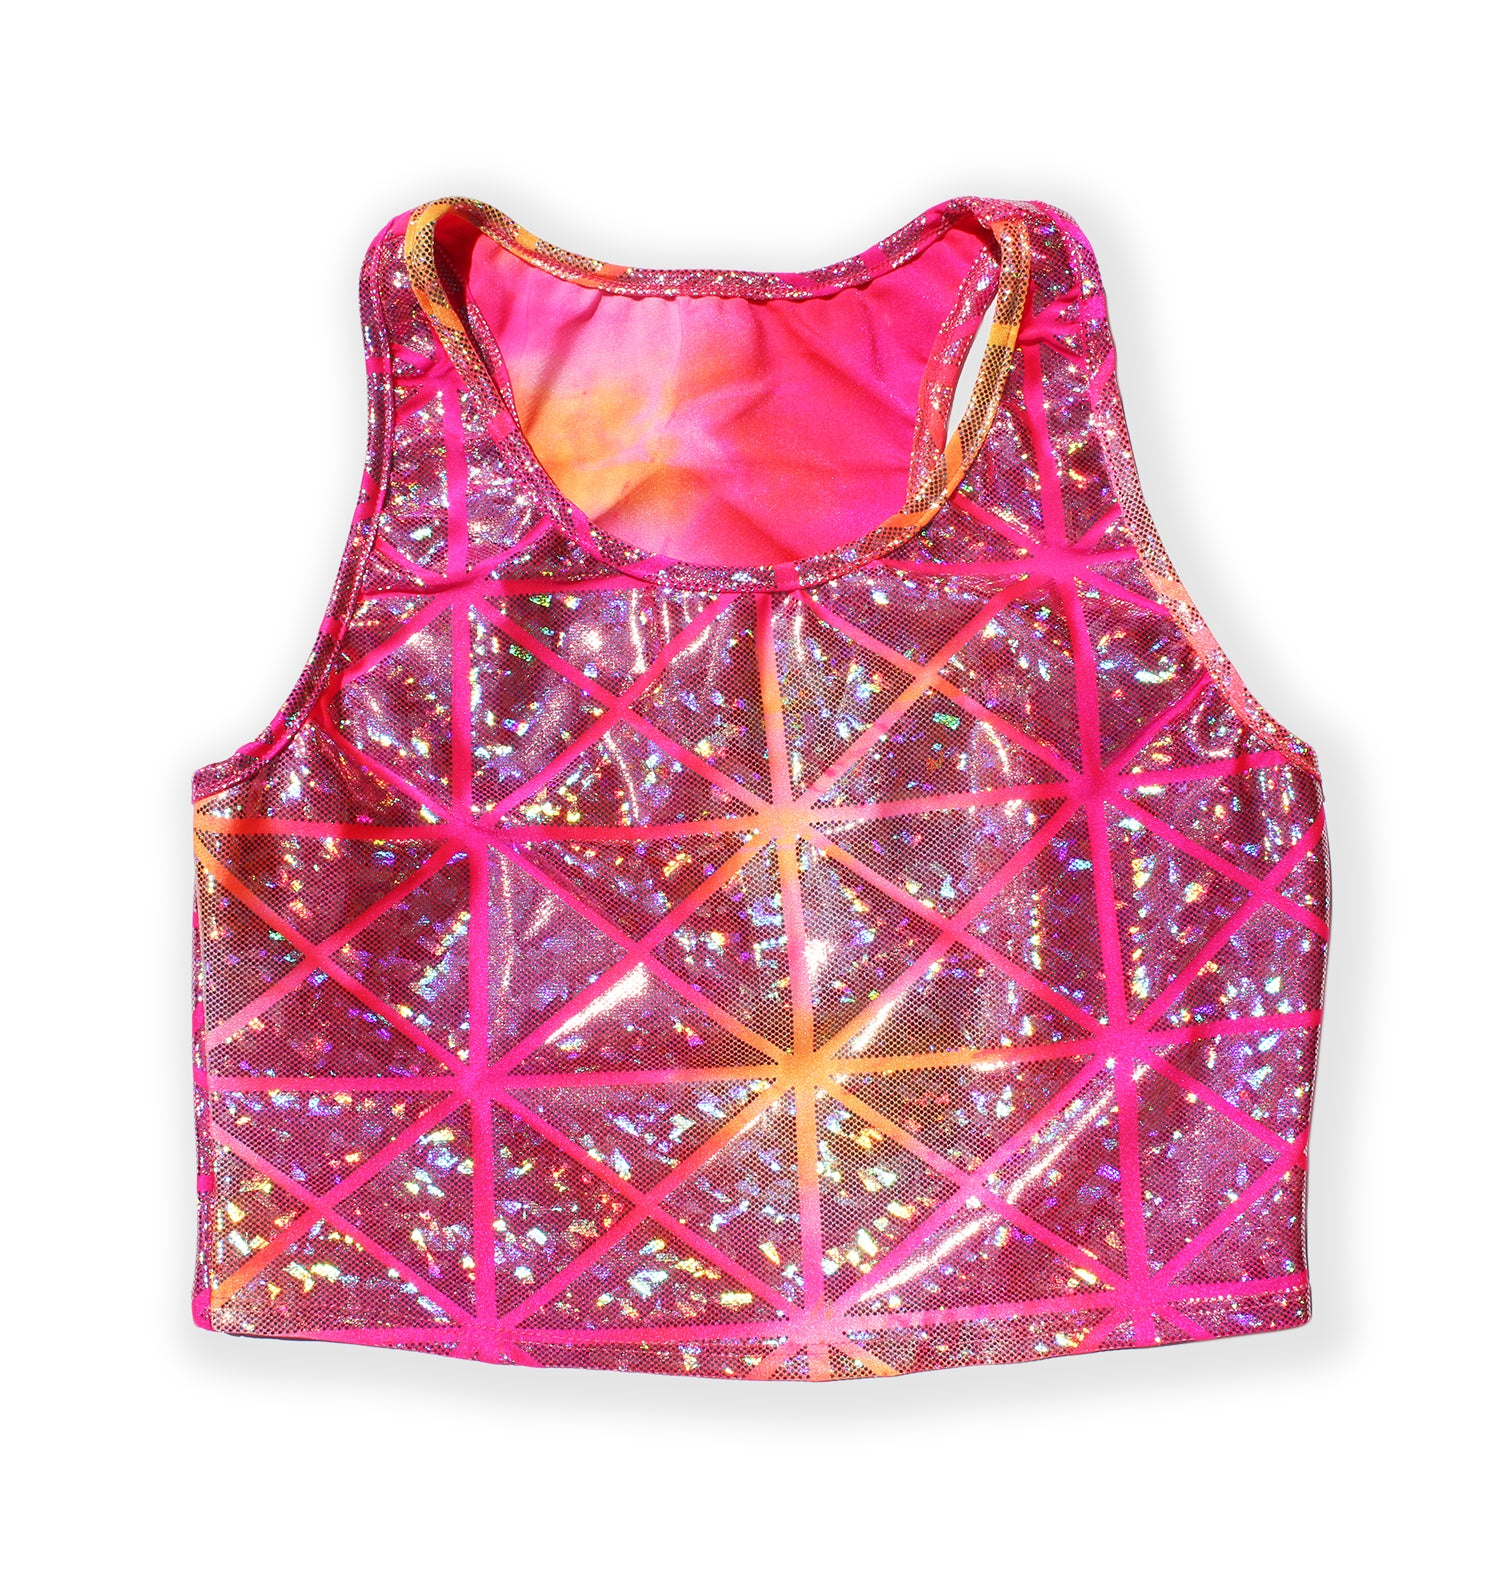 Printed Sleeveless Racerback Crop Top T-Shirt (Pink and Orange Glitter Triangle Print)